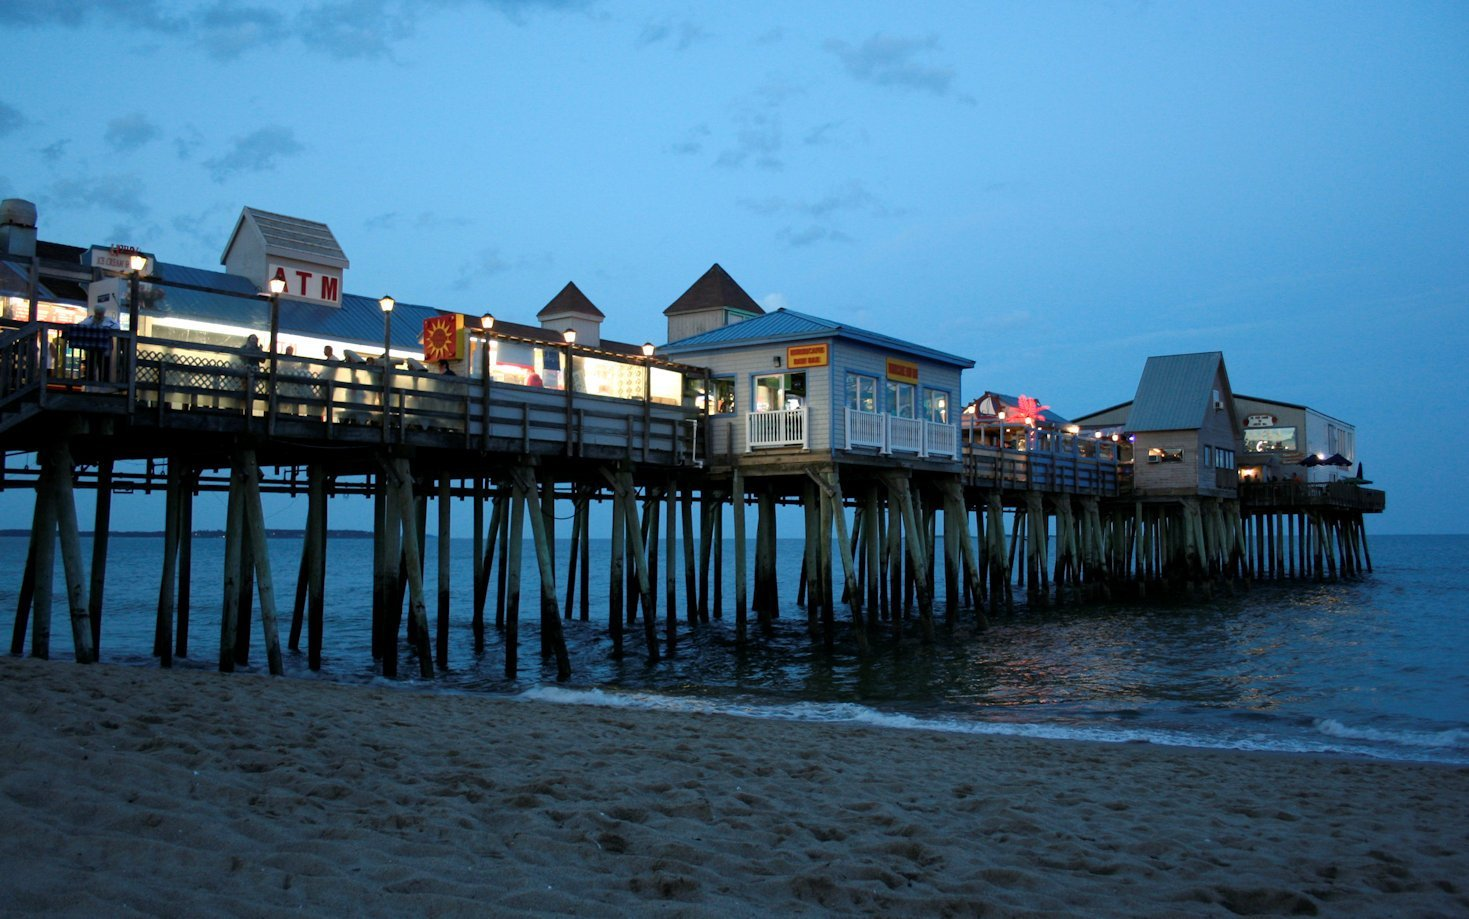 A photo of Old Orchard Beach's Pier at dusk.